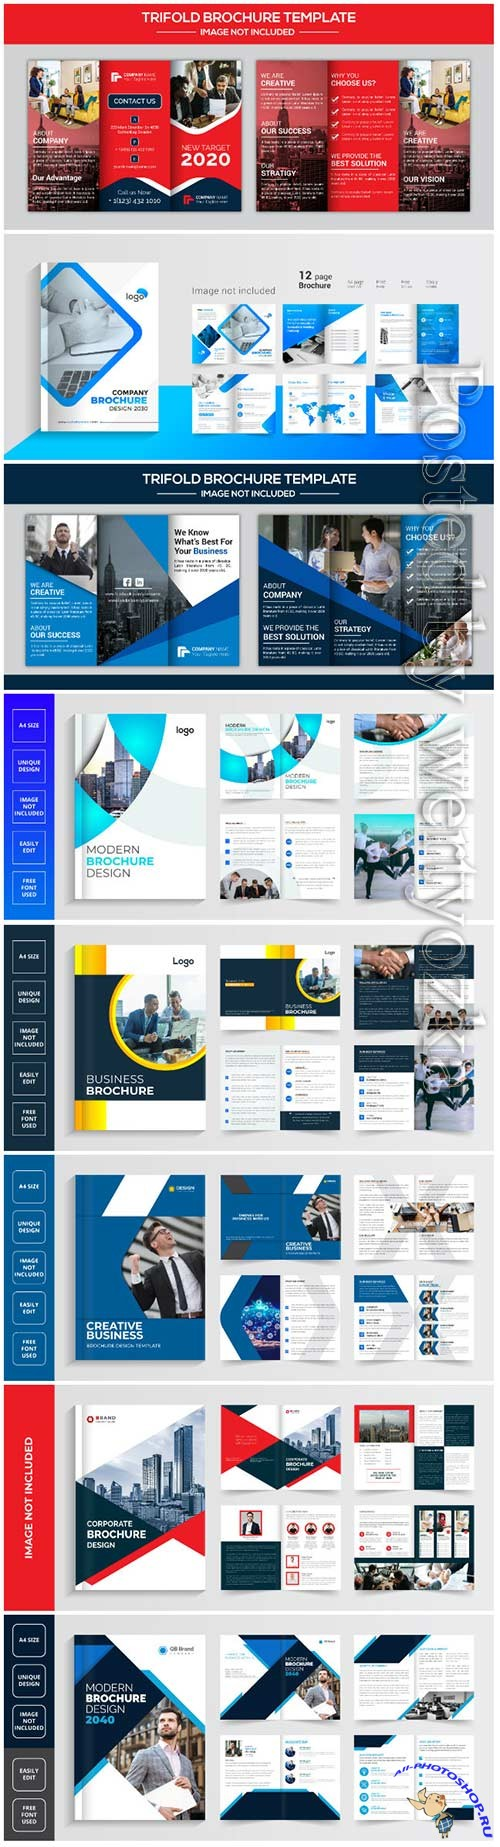 Vector business brochure design template